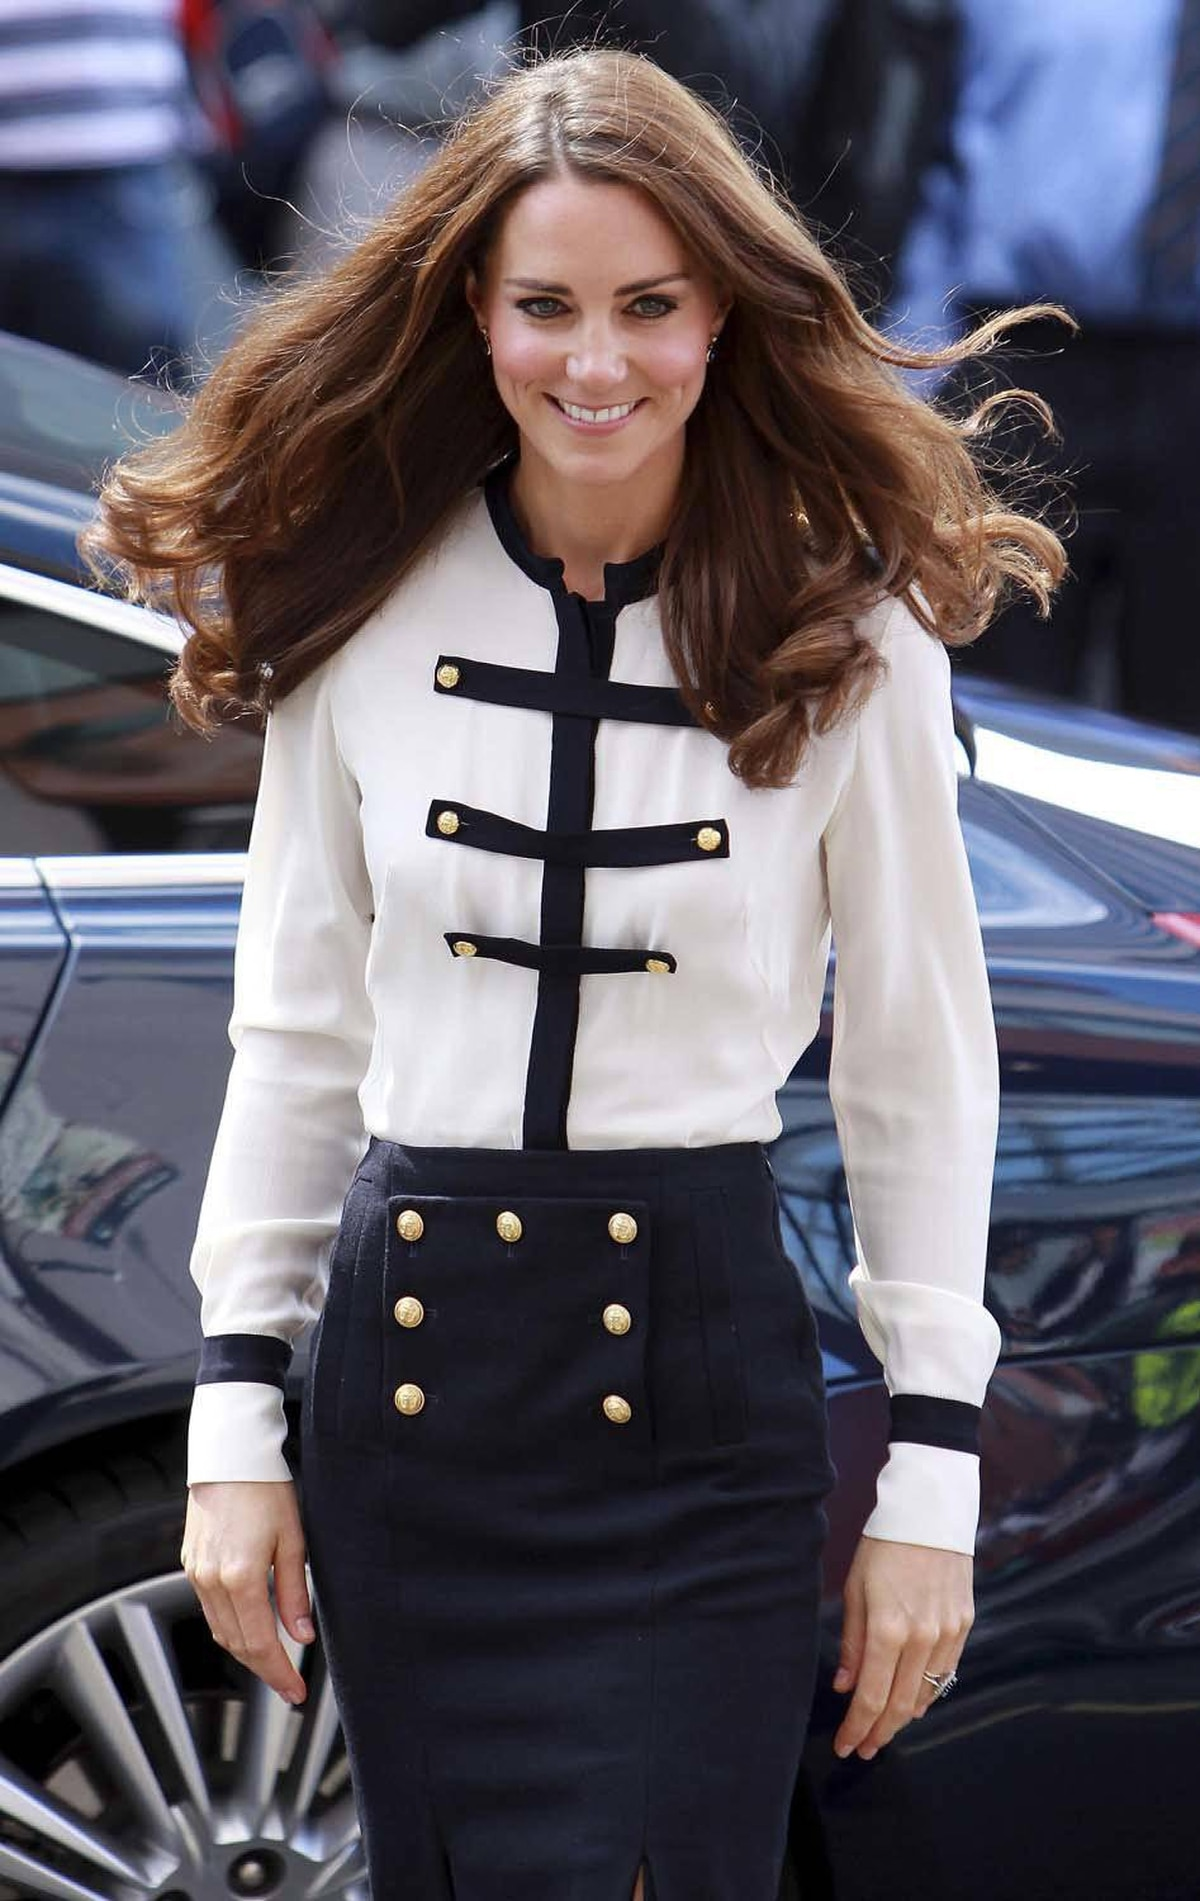 On August 19, Kate visits a part of London damaged by the summer's riots in a military-inspired skirt/shirt combo by Alexander McQueen.